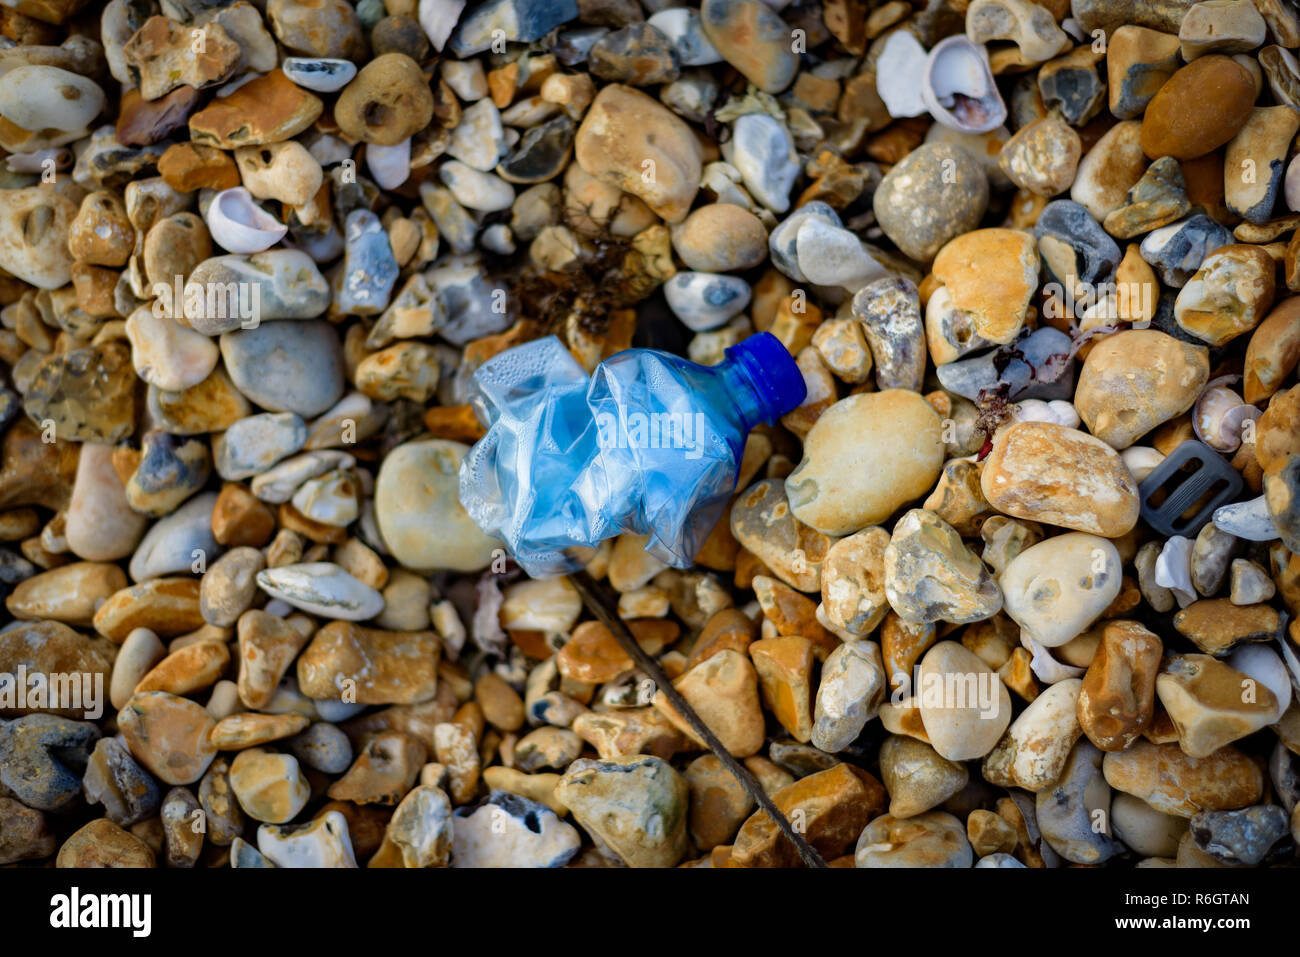 Beach pollution, plastic and waste from the ocean on a beach. - Stock Image